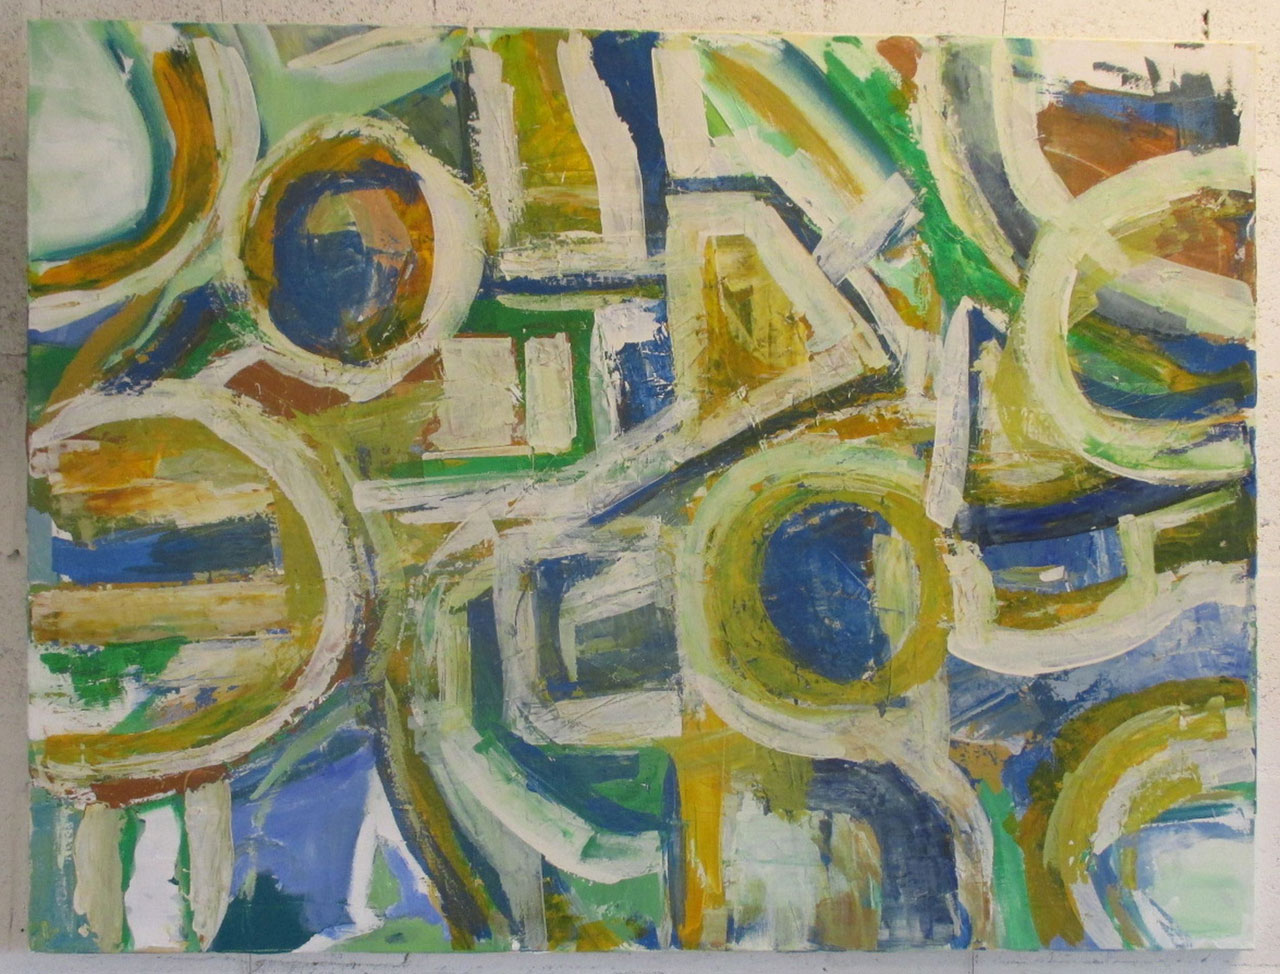 Two sides of the Equation. 36 X 48 inch abstract